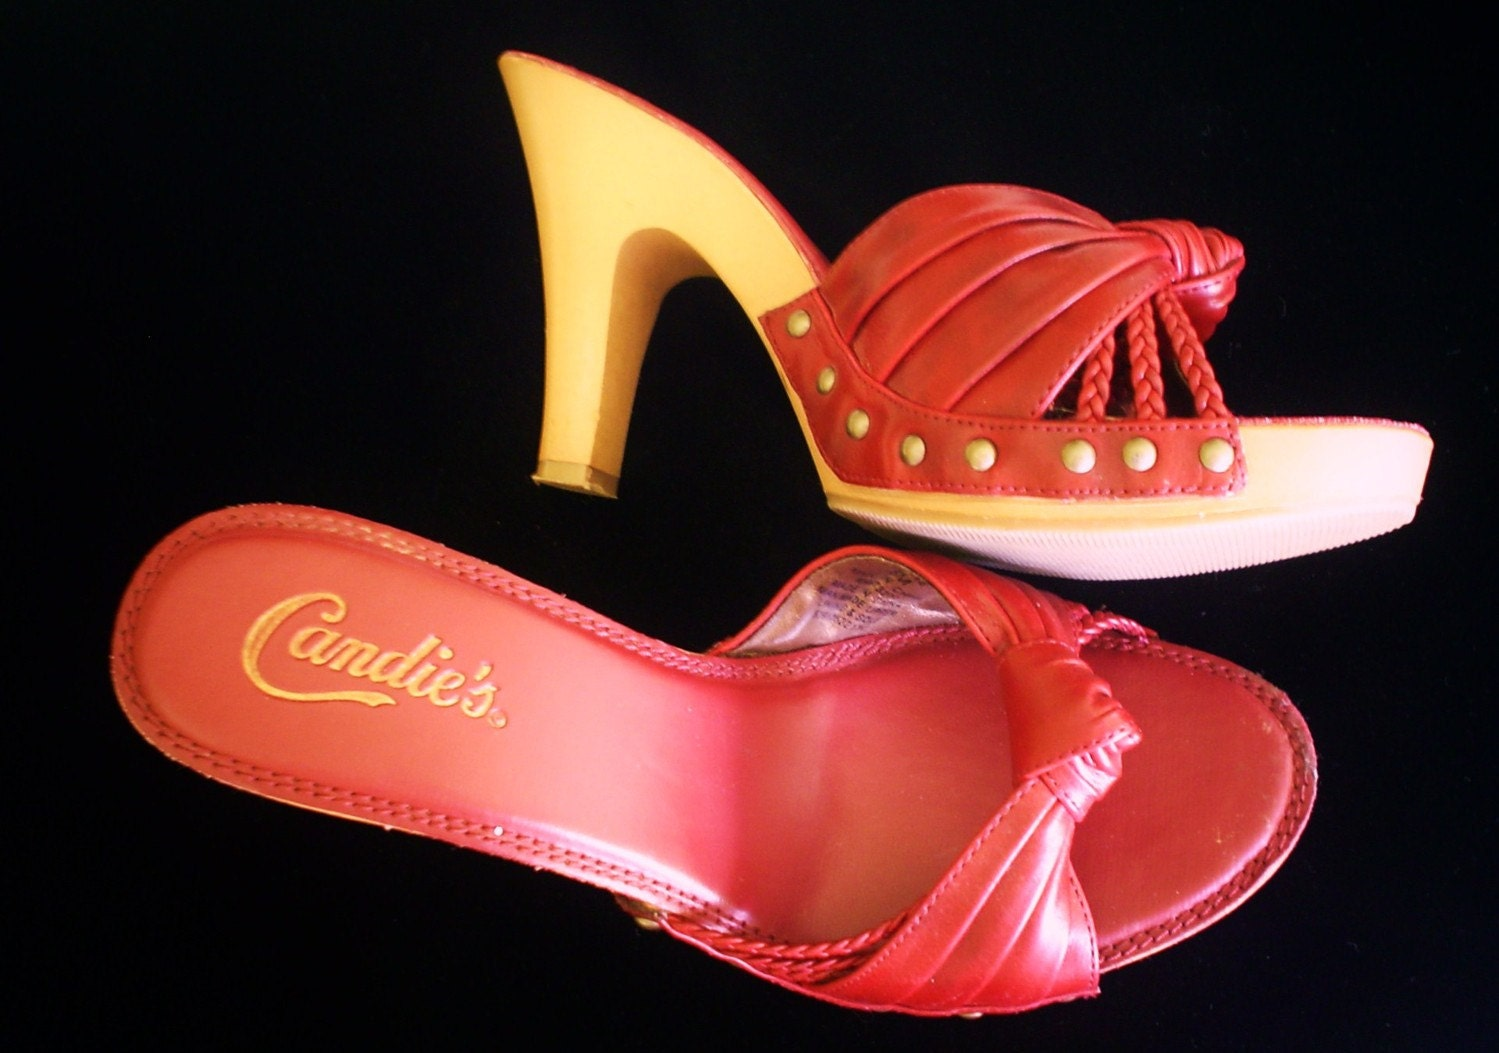 Authentic Candies Red High Heel Sandals Size 8